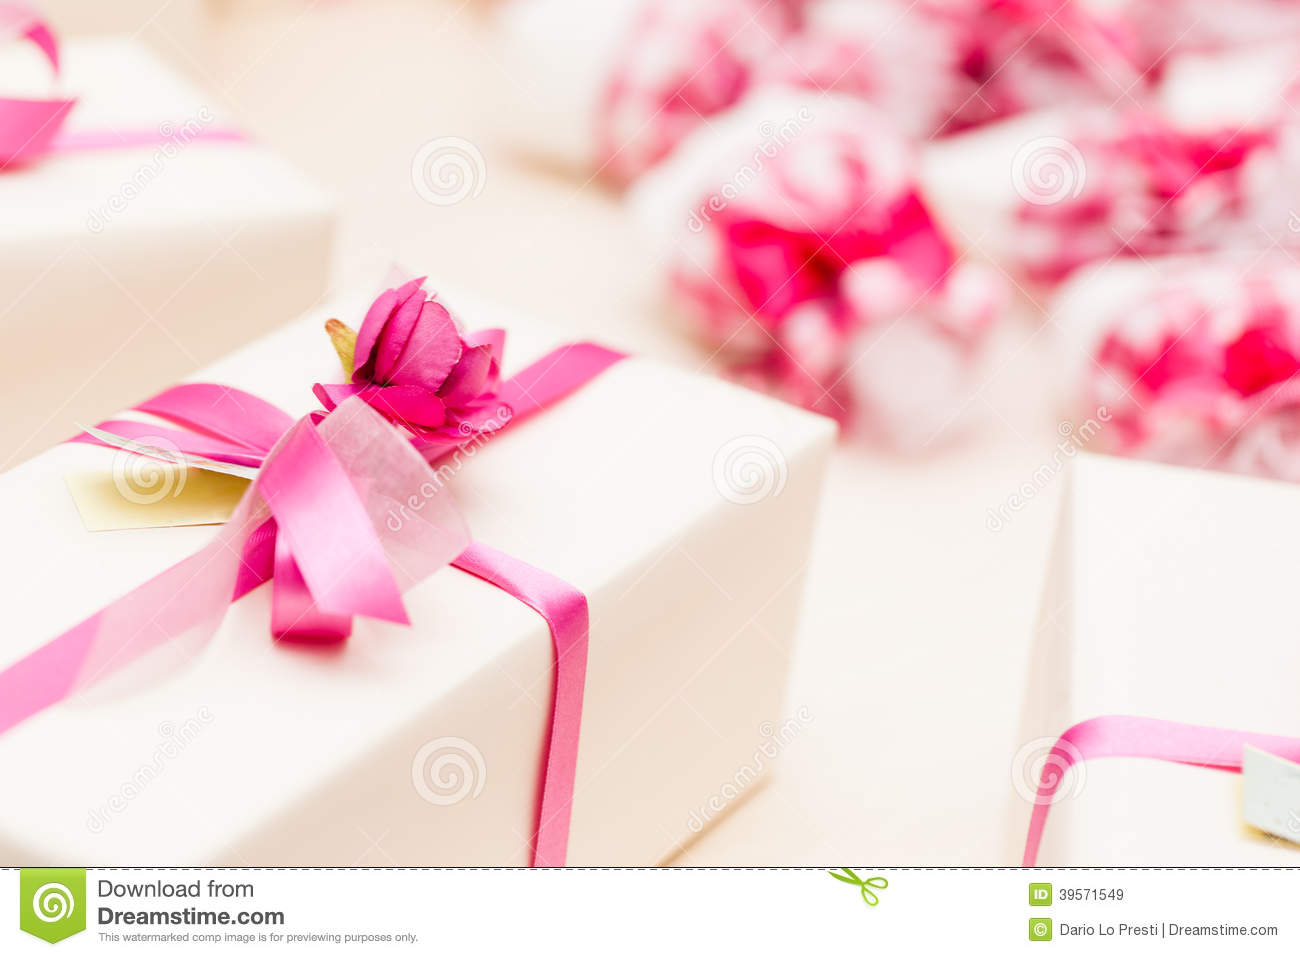 Wrapped Wedding gifts stock image. Image of event, closeup - 39571549